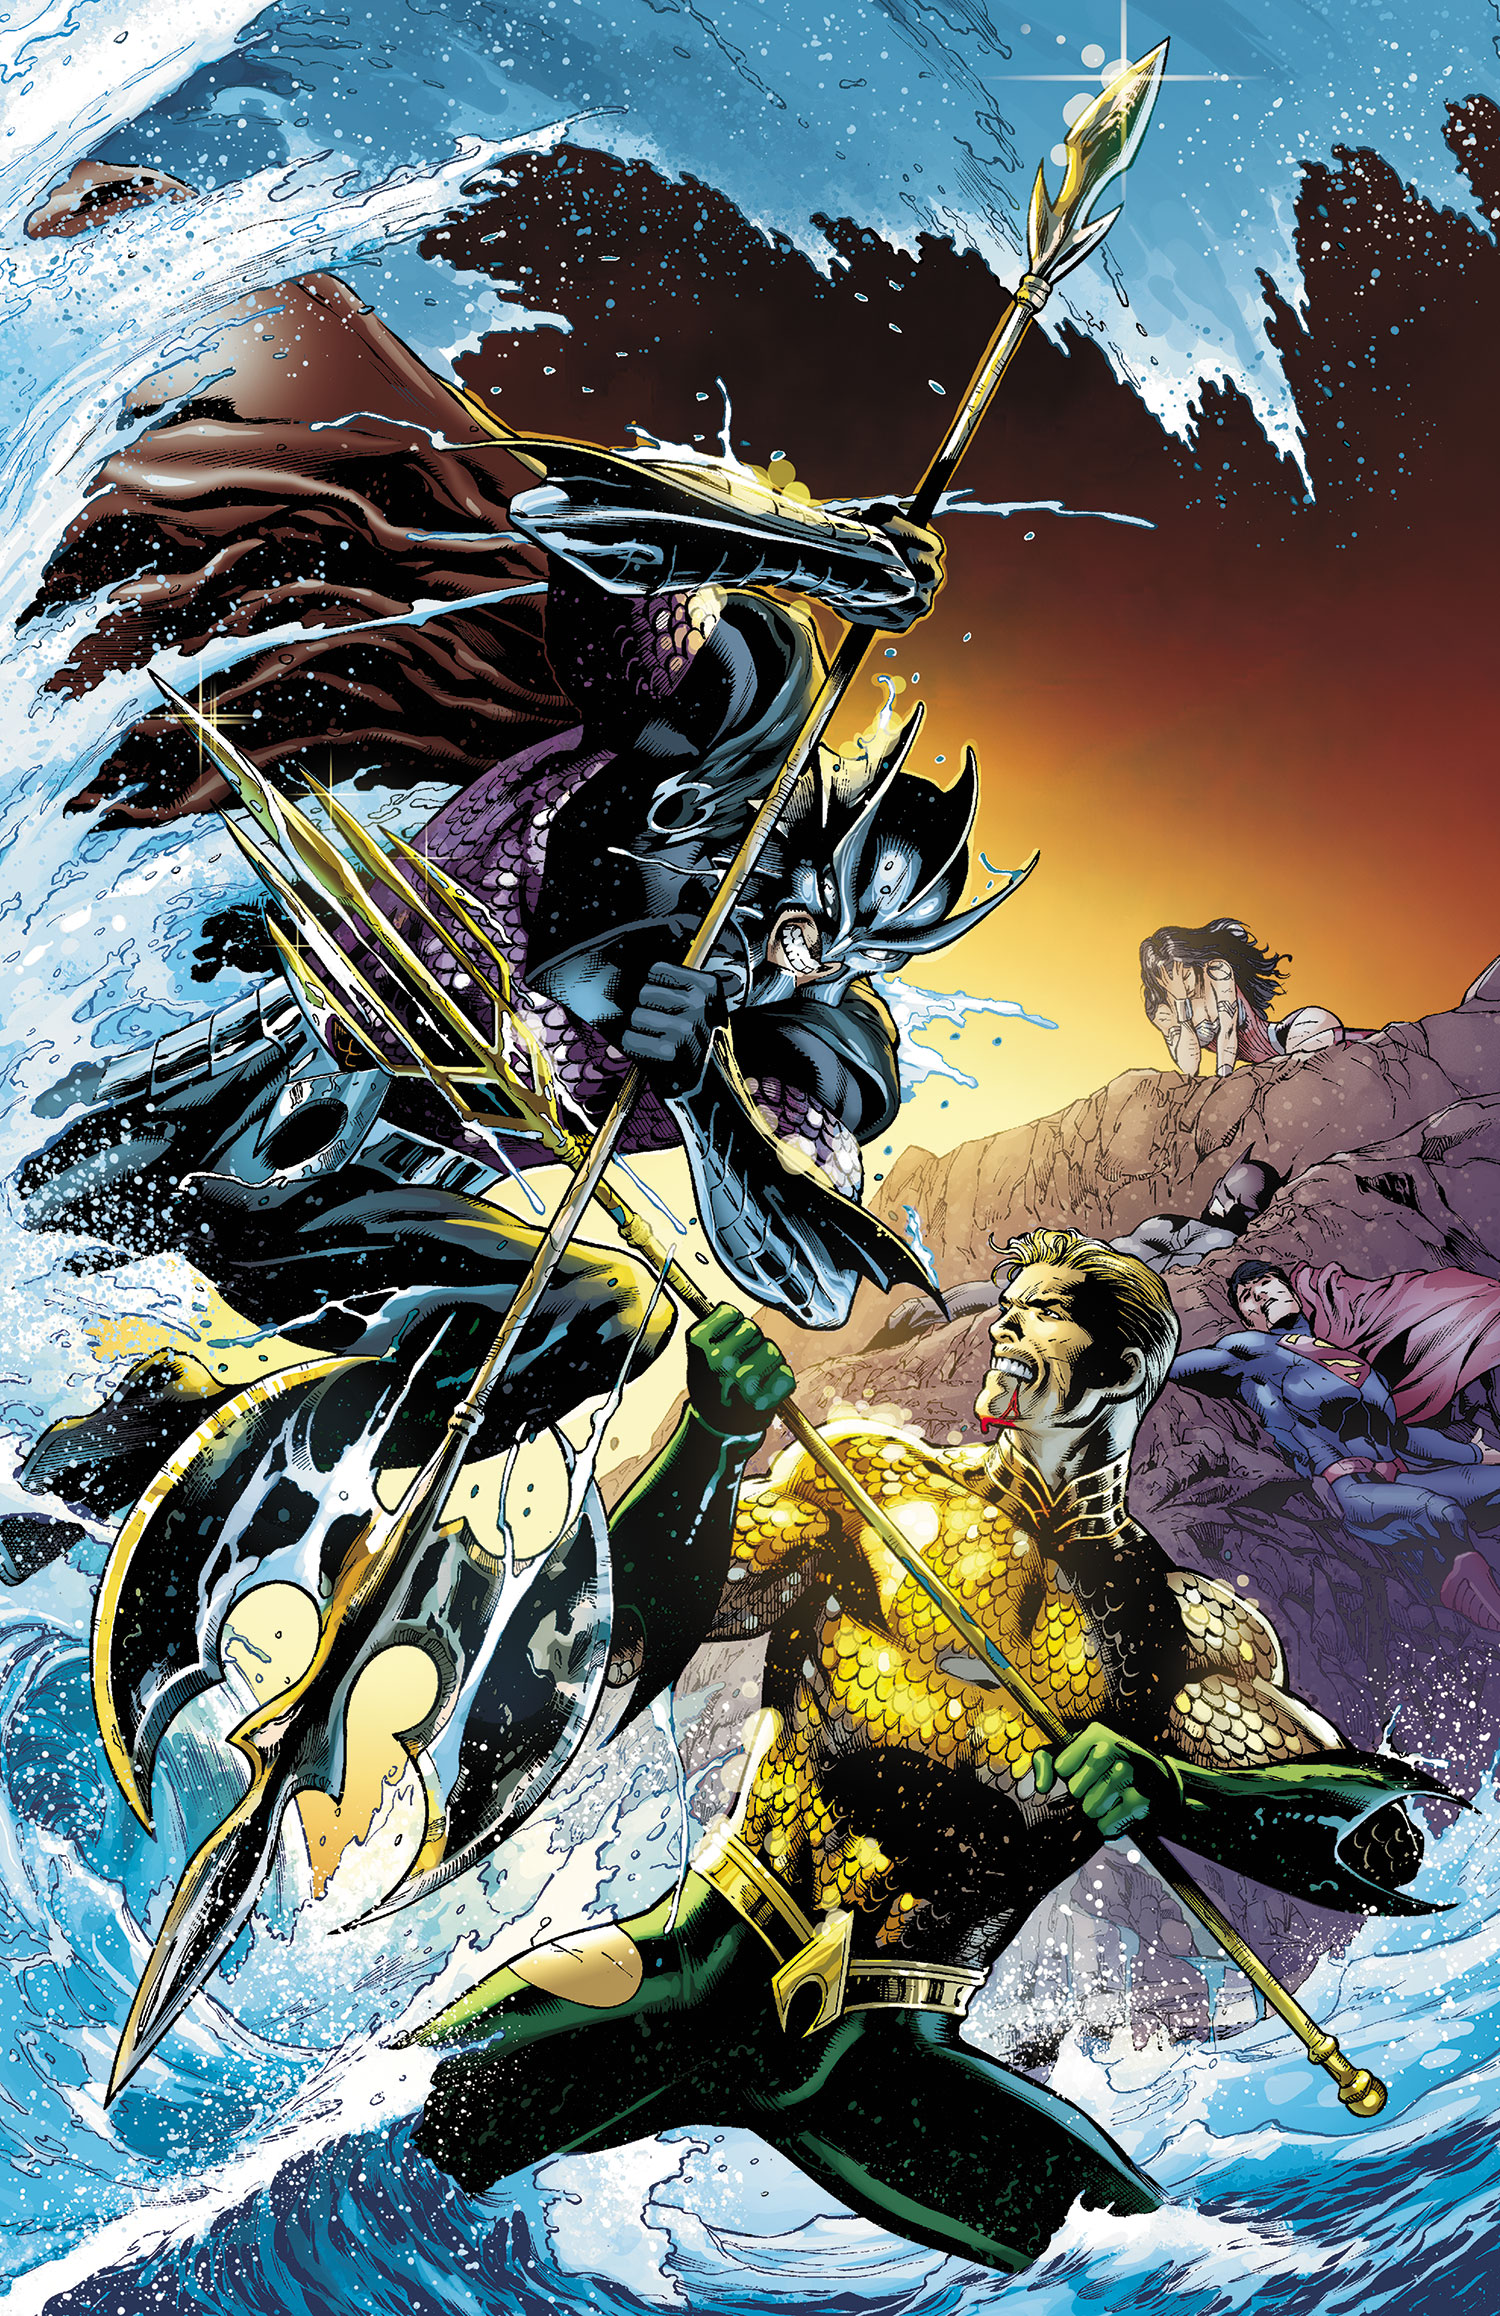 Aquaman Vol 7 15 Textless.jpg